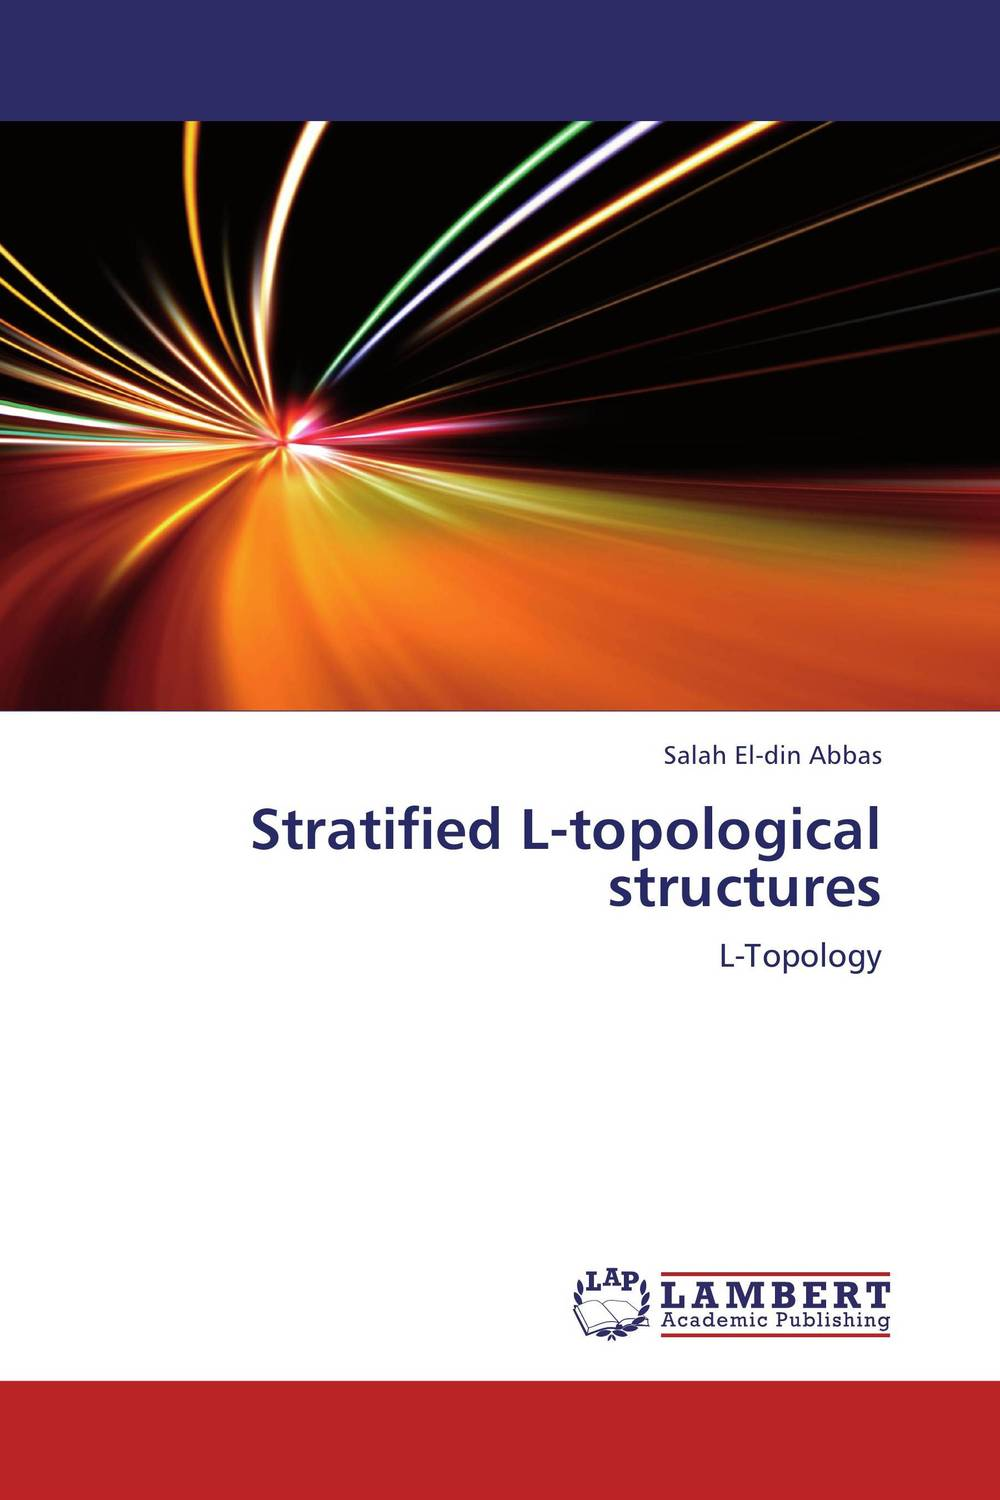 Stratified L-topological structures